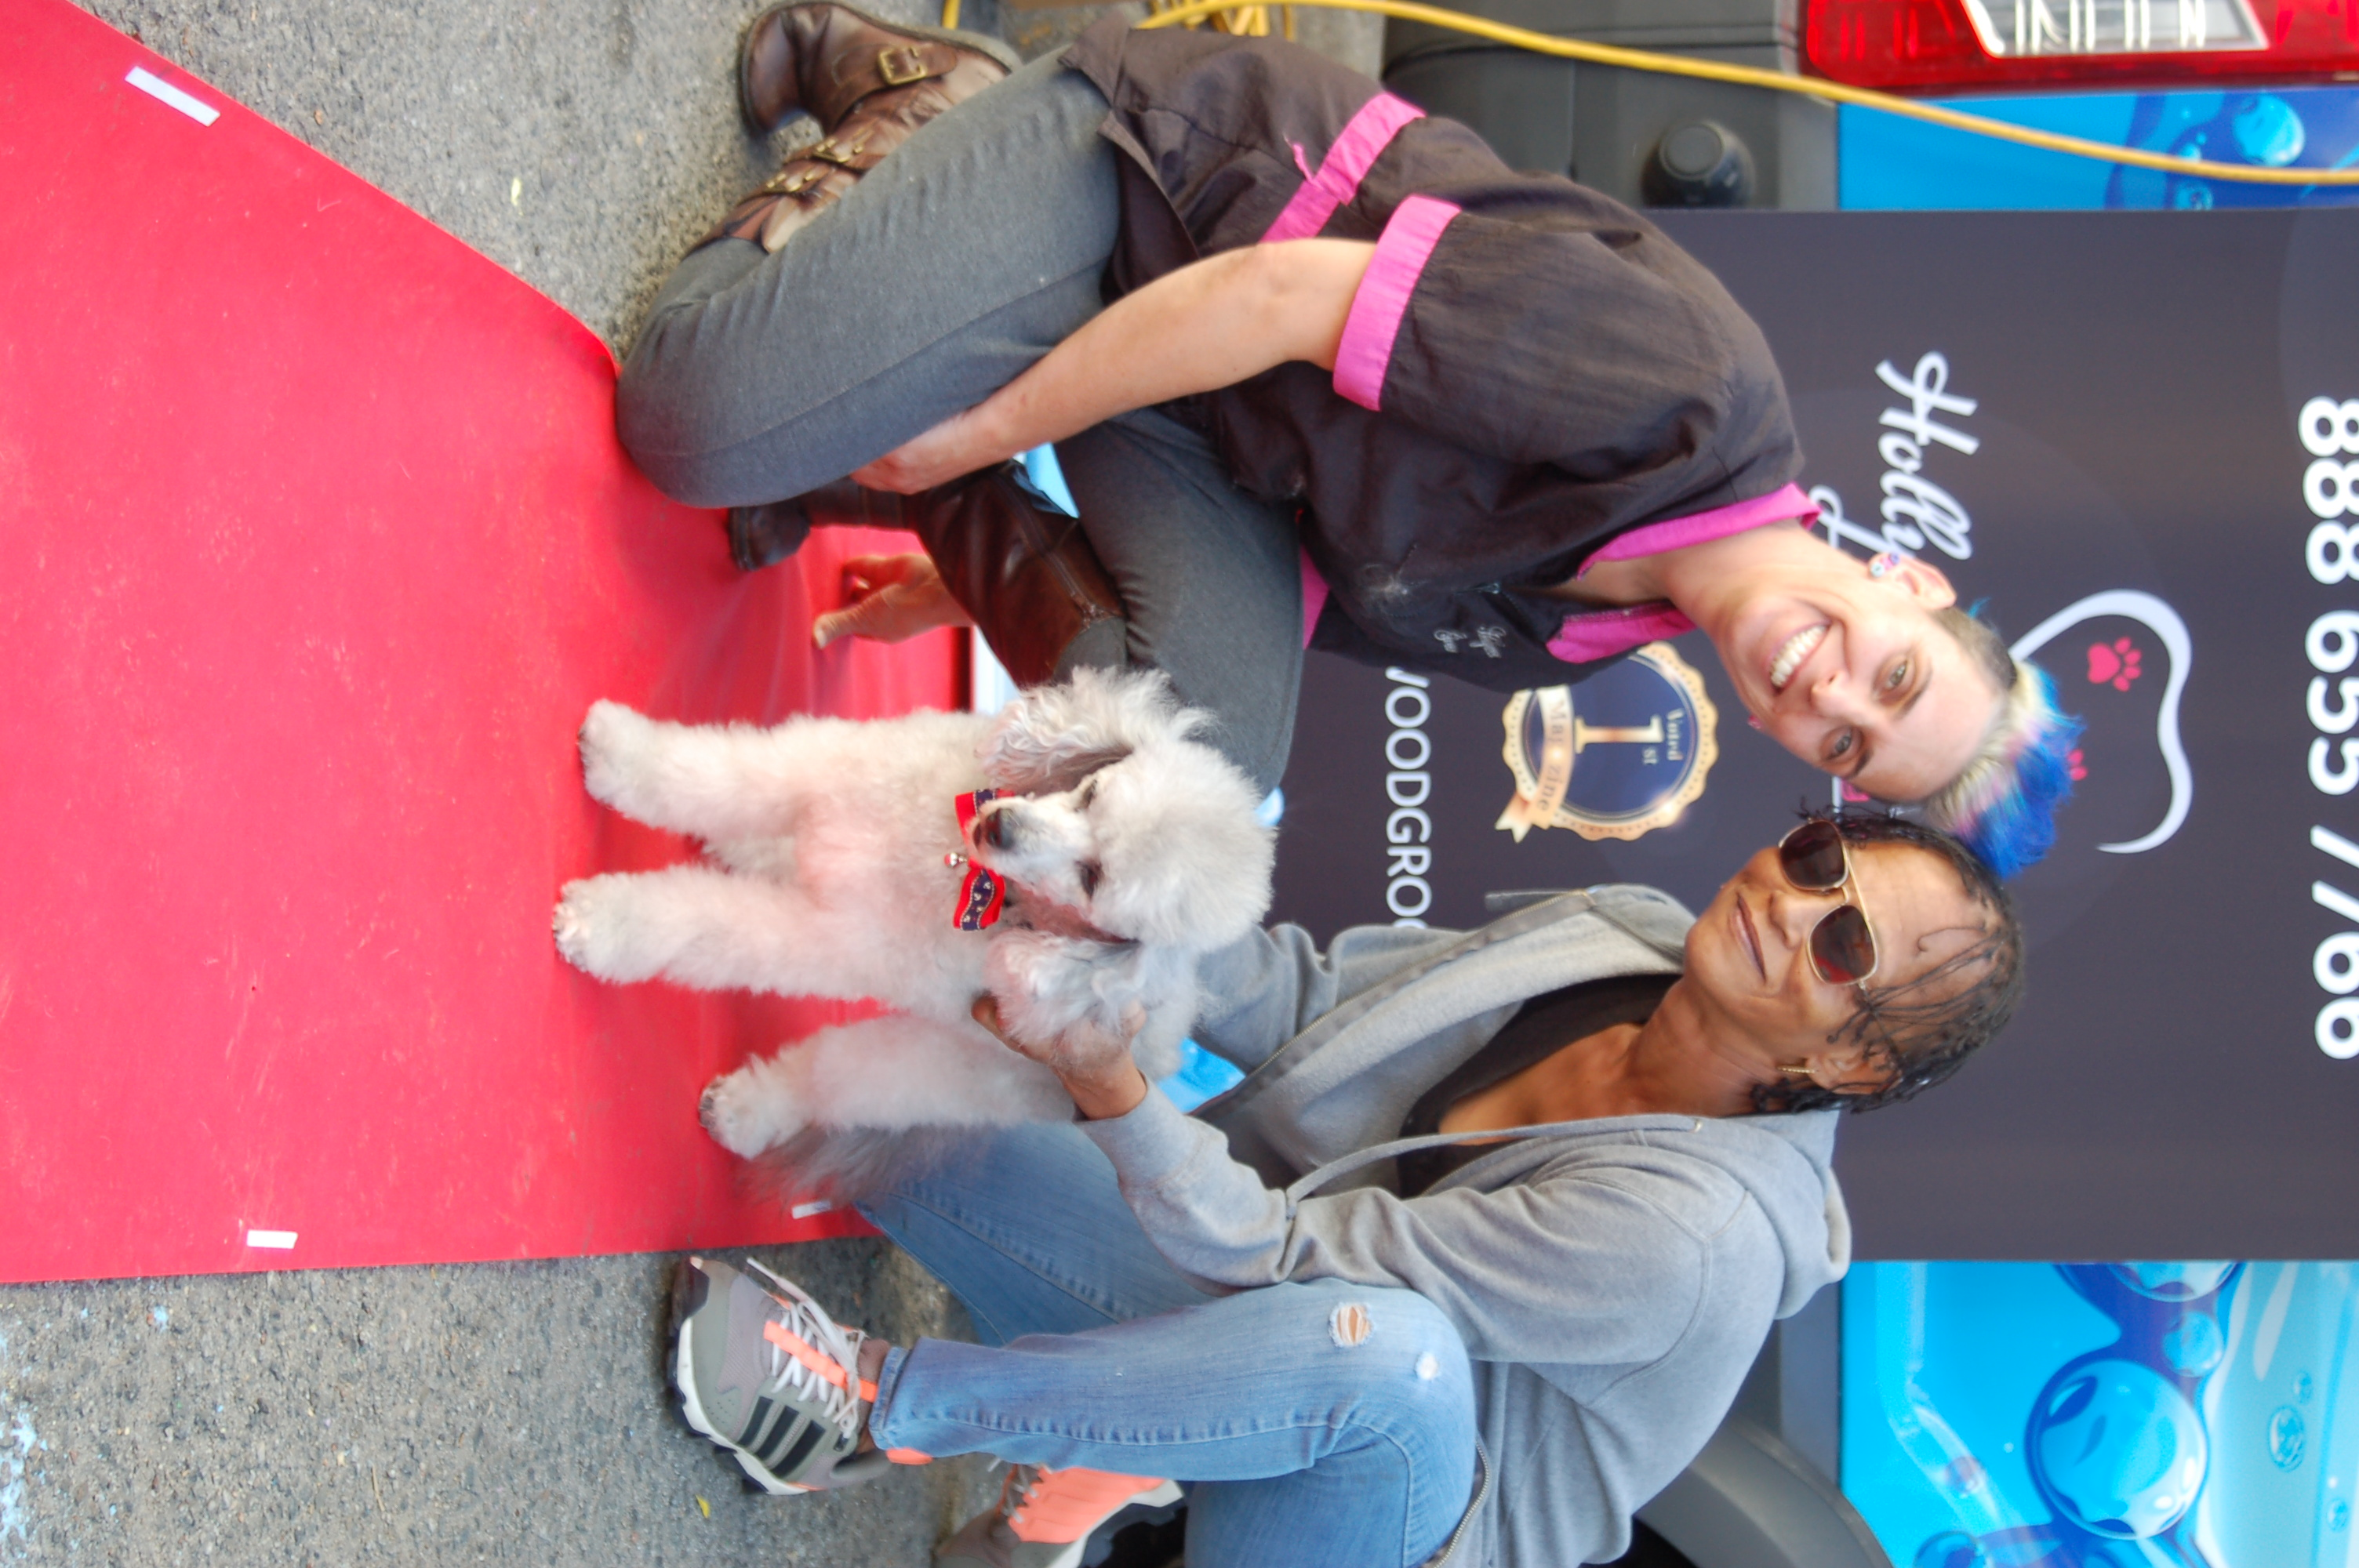 Yael and a pet owner on the red carpet at a Community Event.